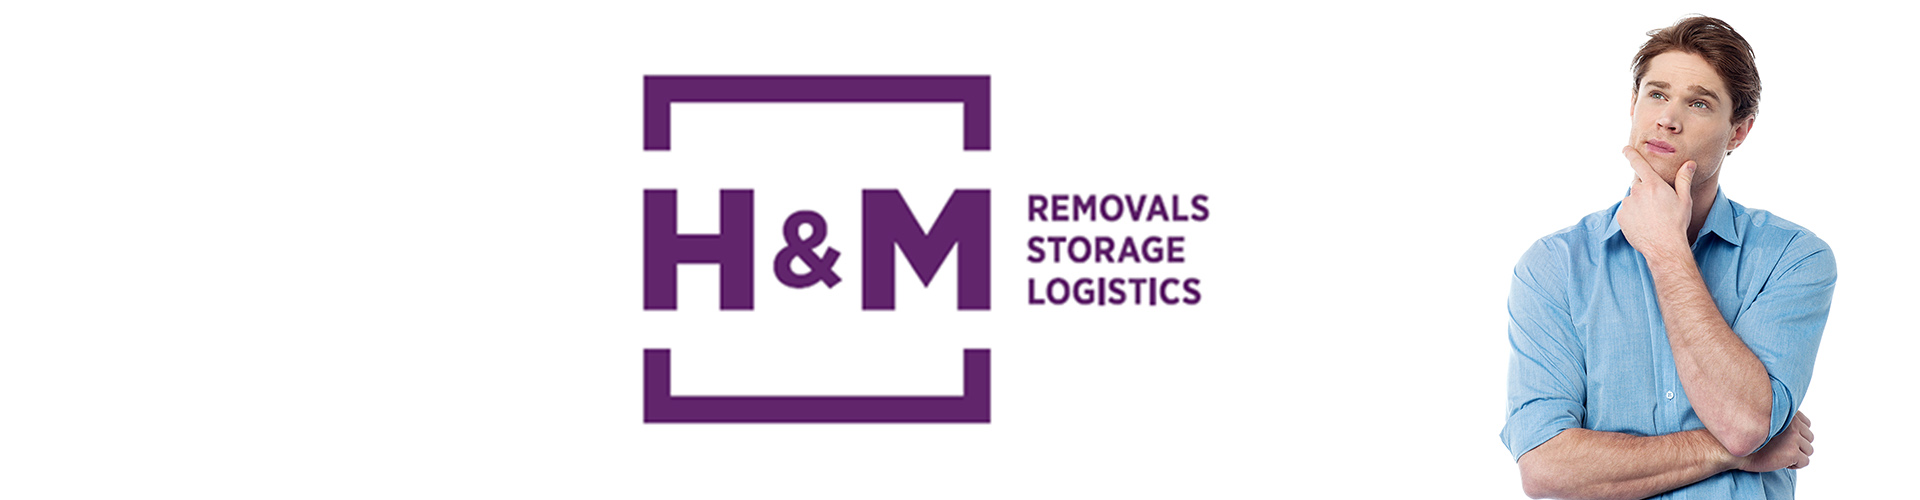 Why H M Removals For Your